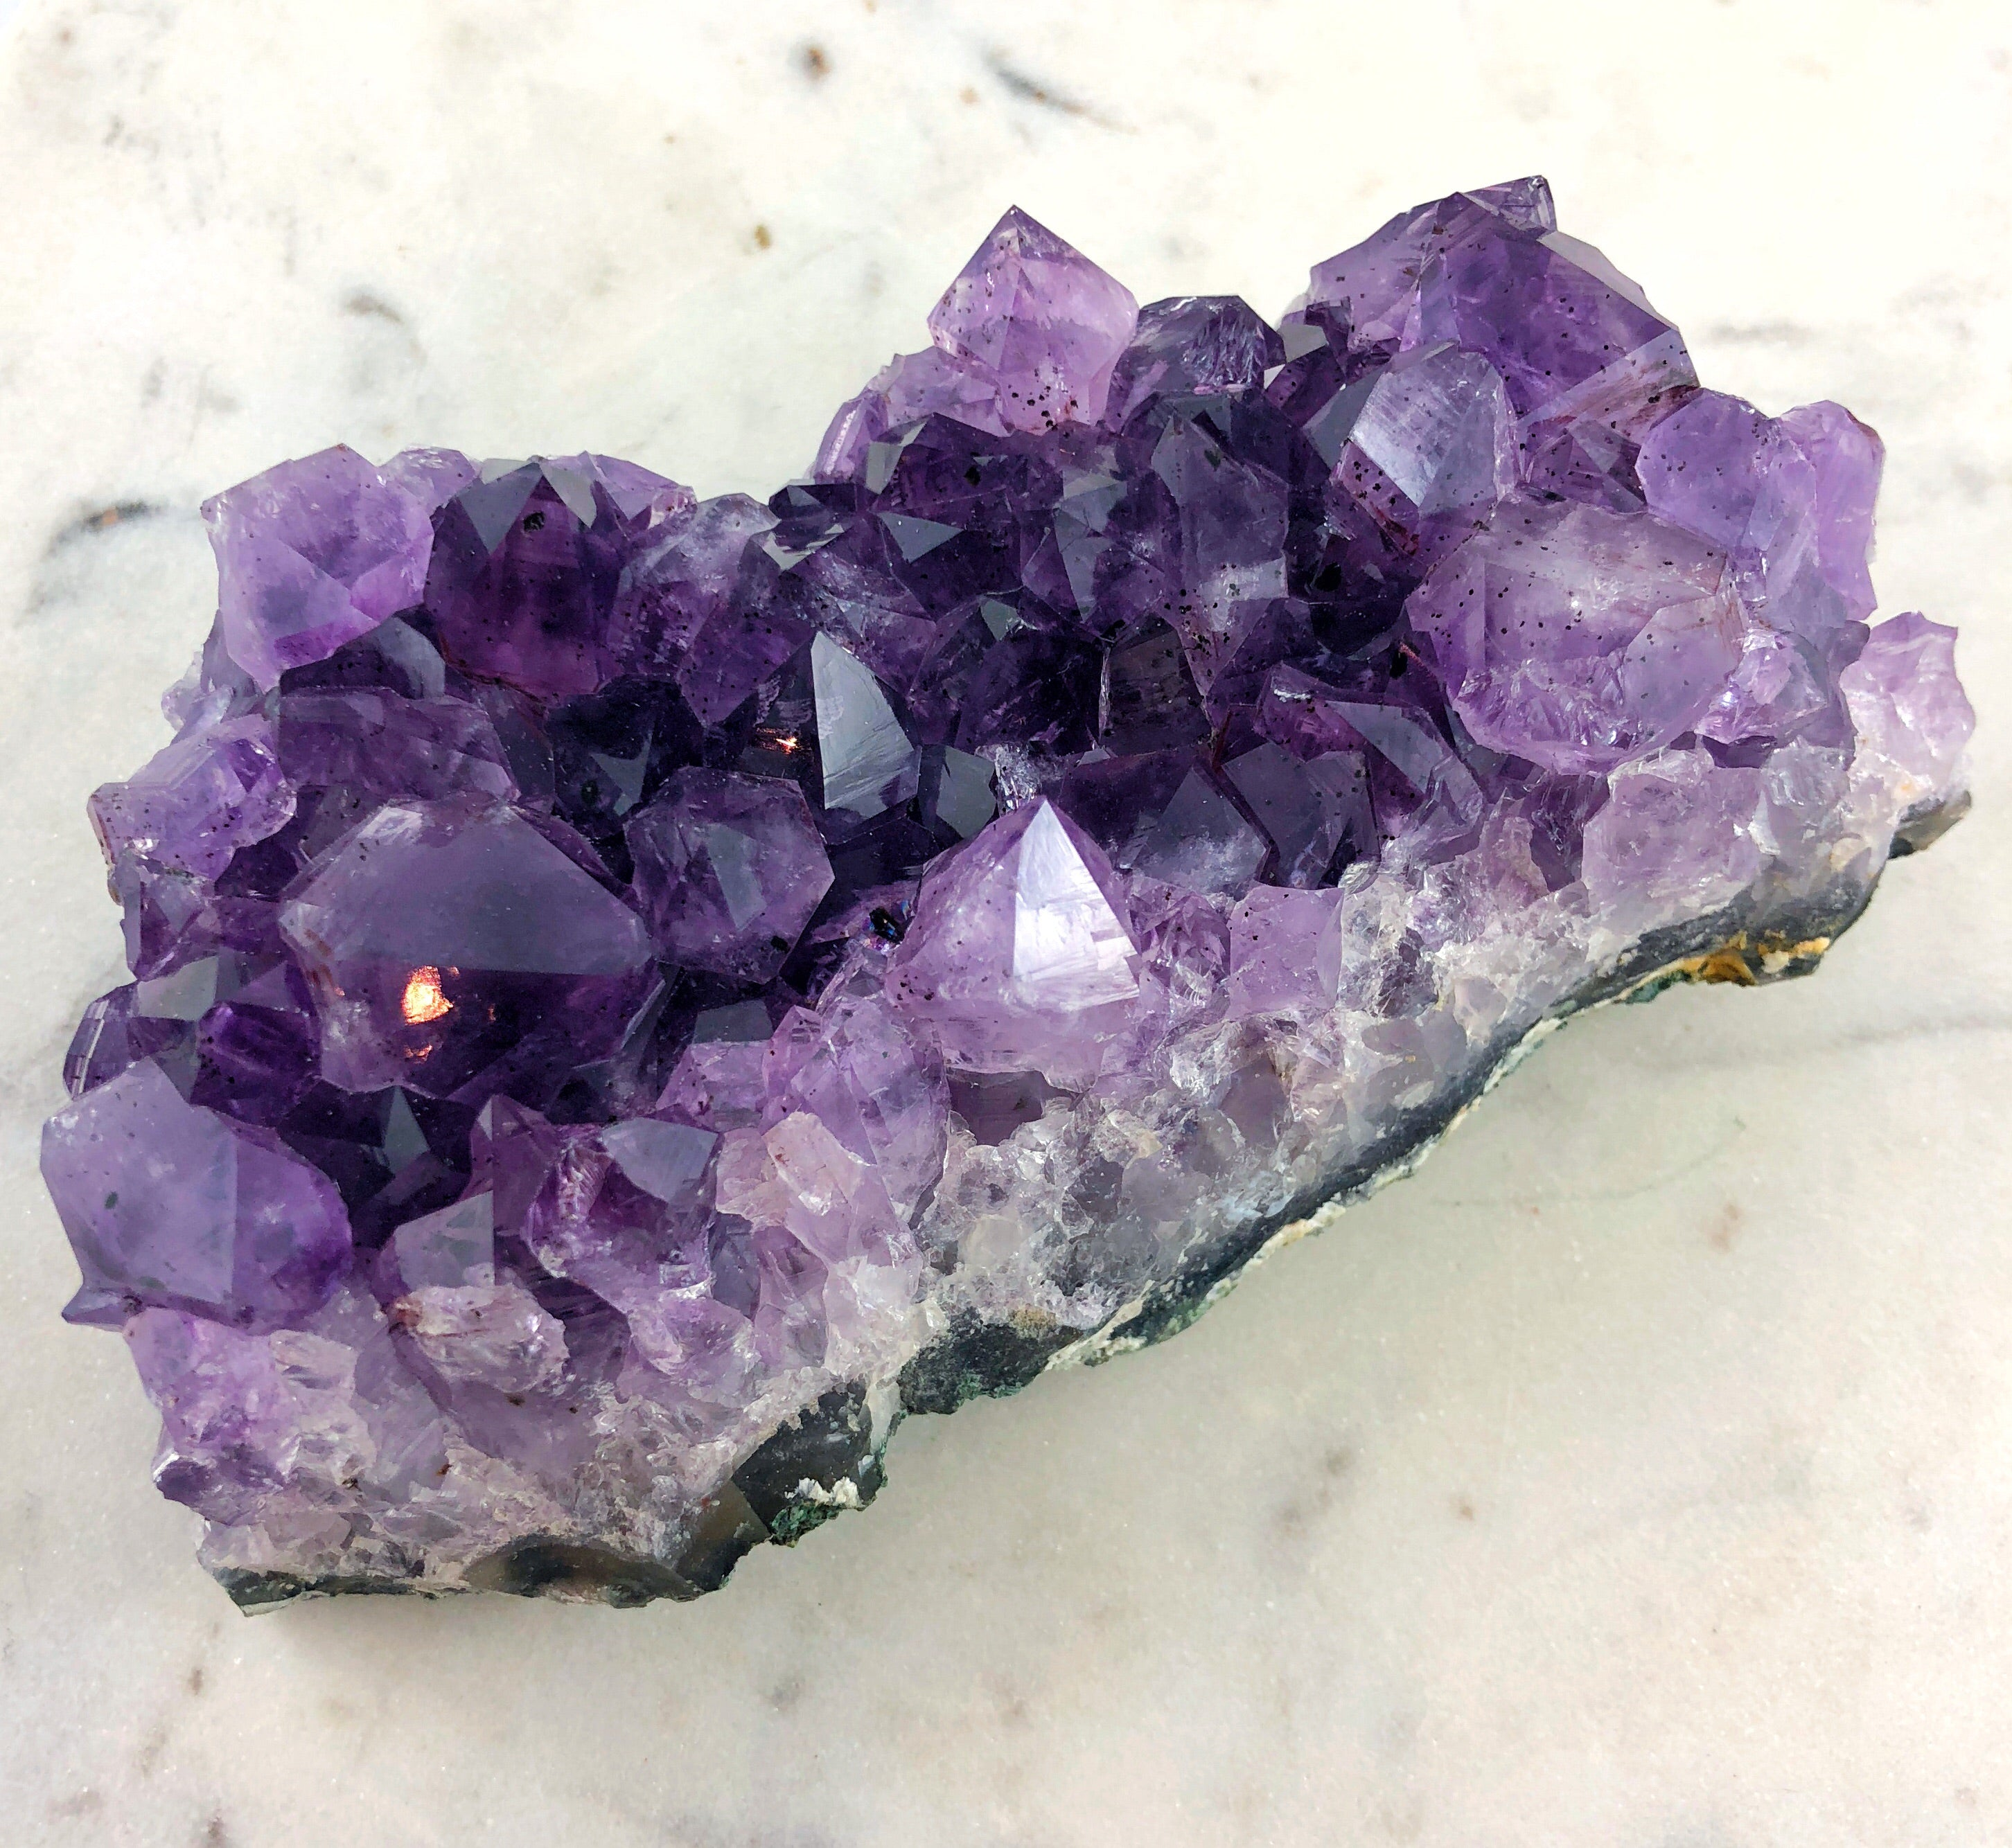 LITTLE PAPER LANE crystals-Amethyst cluster (4#)